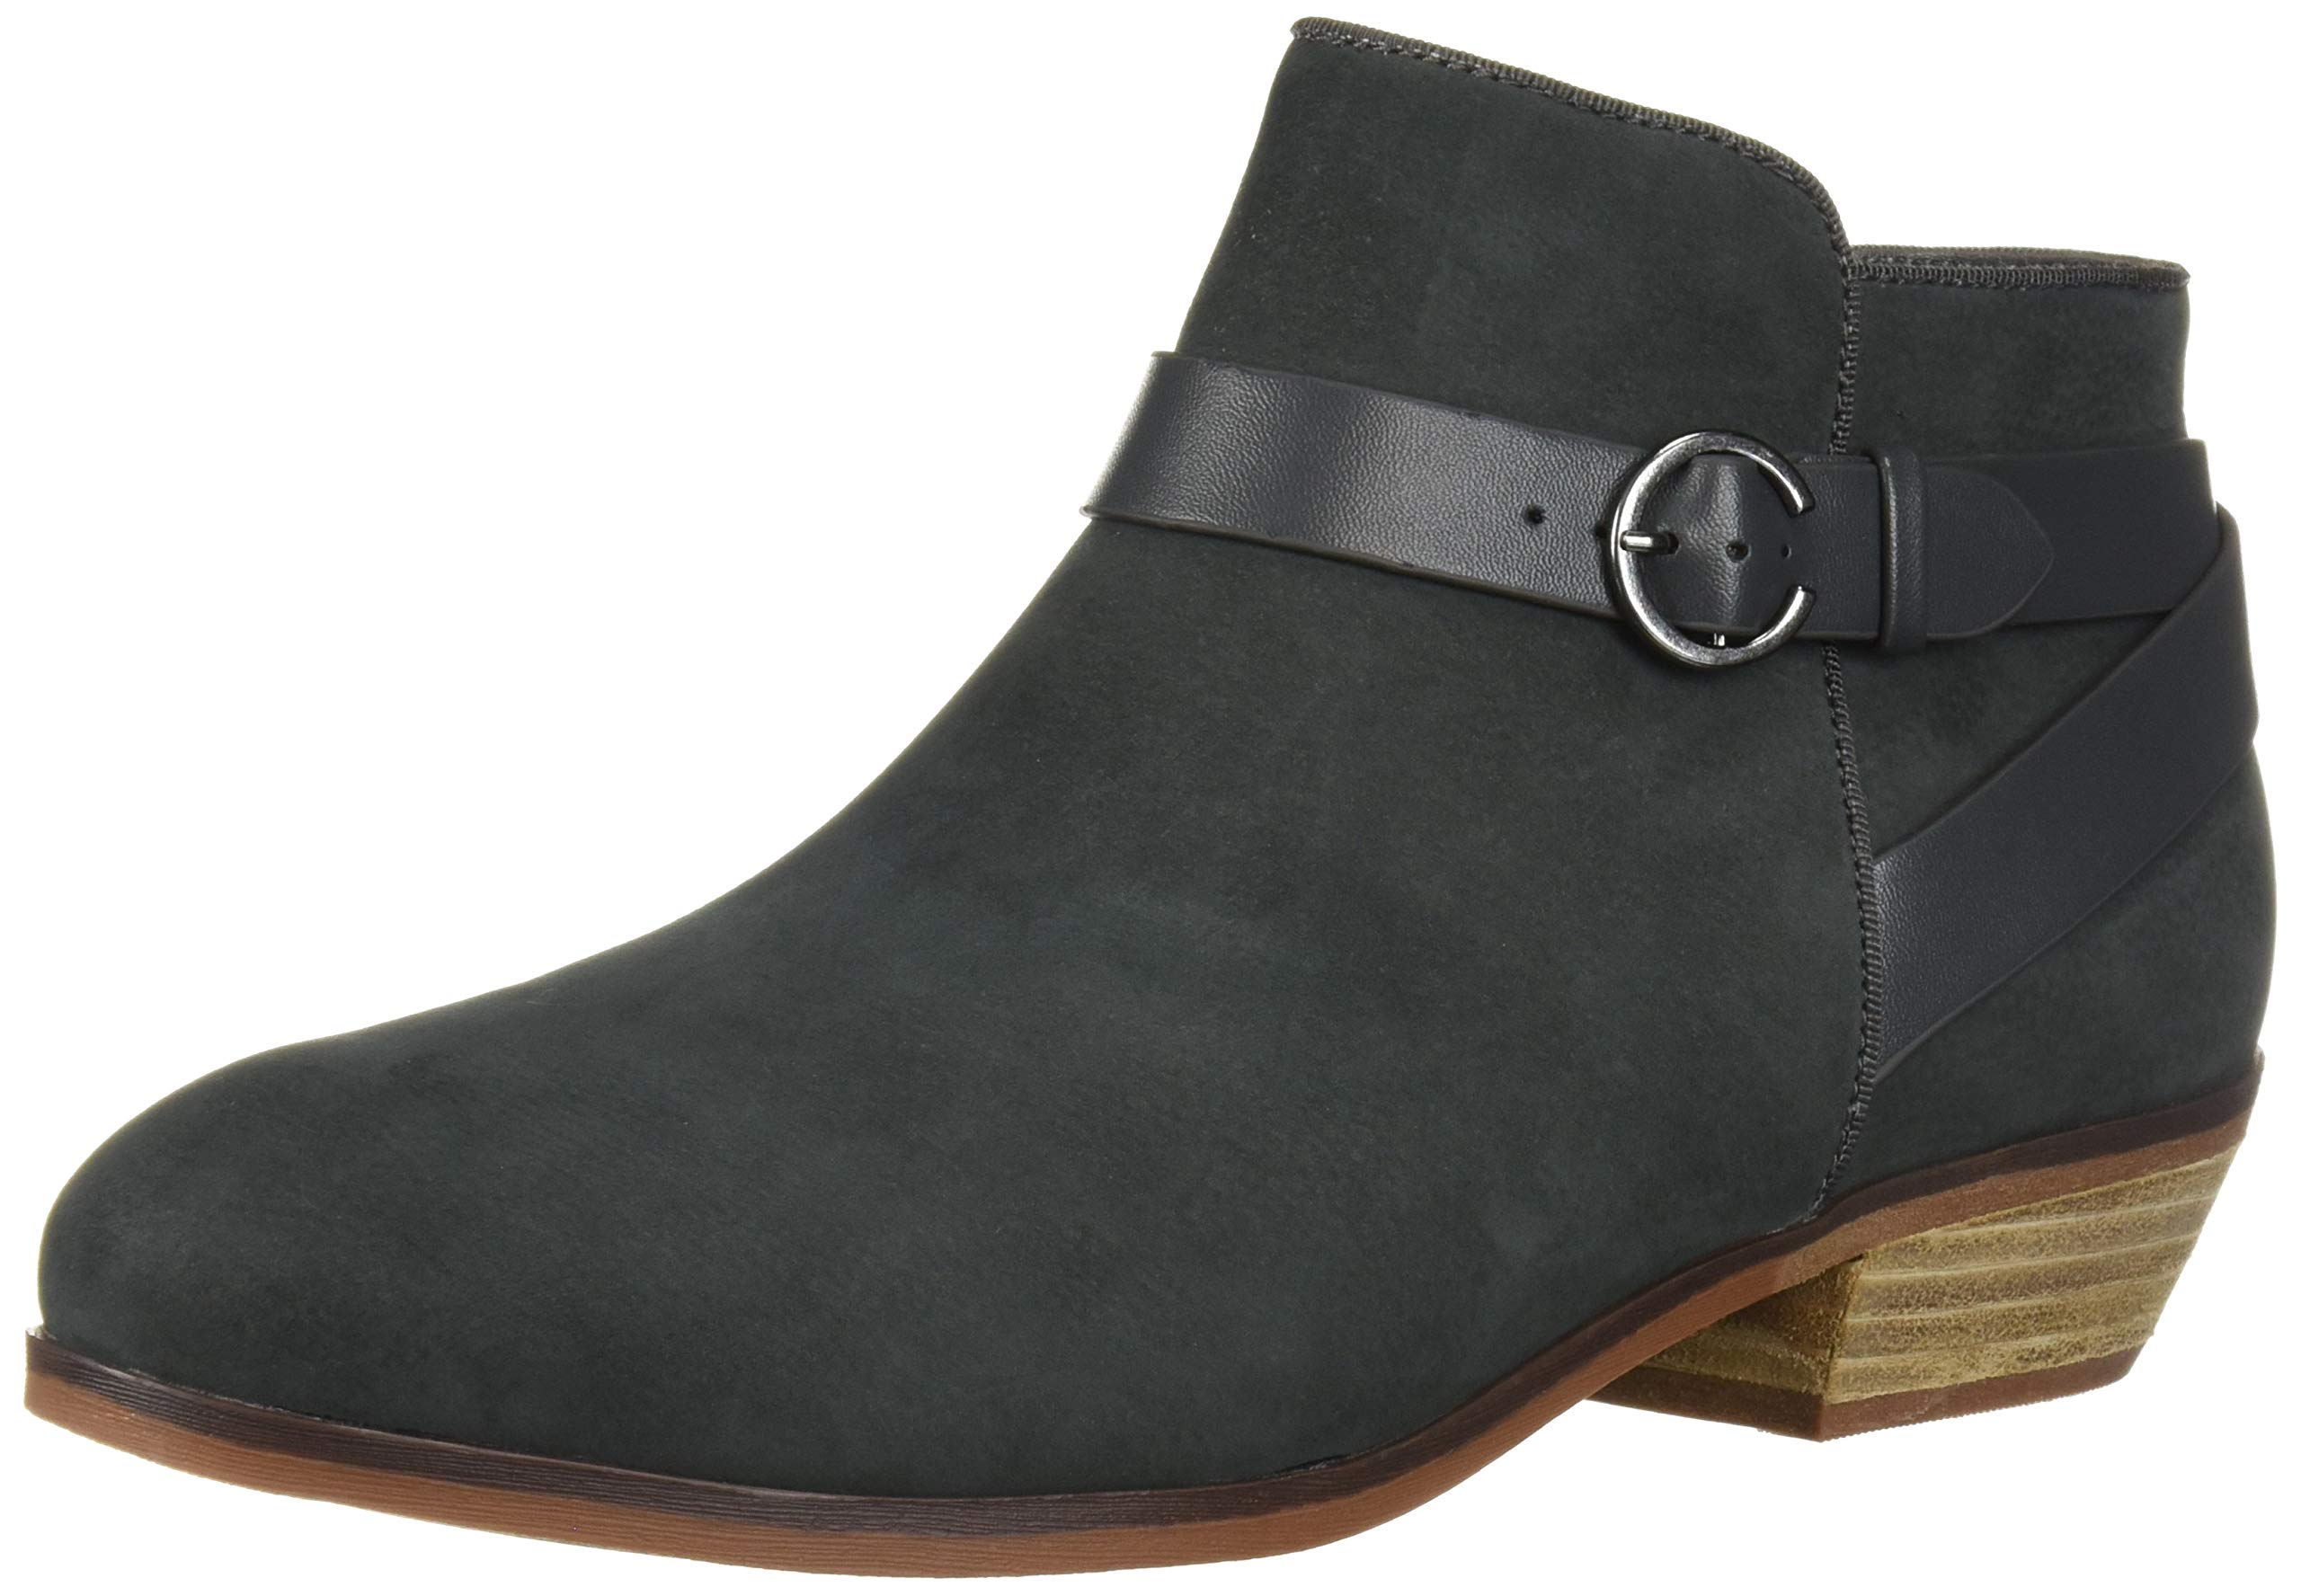 SoftWalk Women's Raven Ankle Boot, Graphite, 9.0 W US by SoftWalk